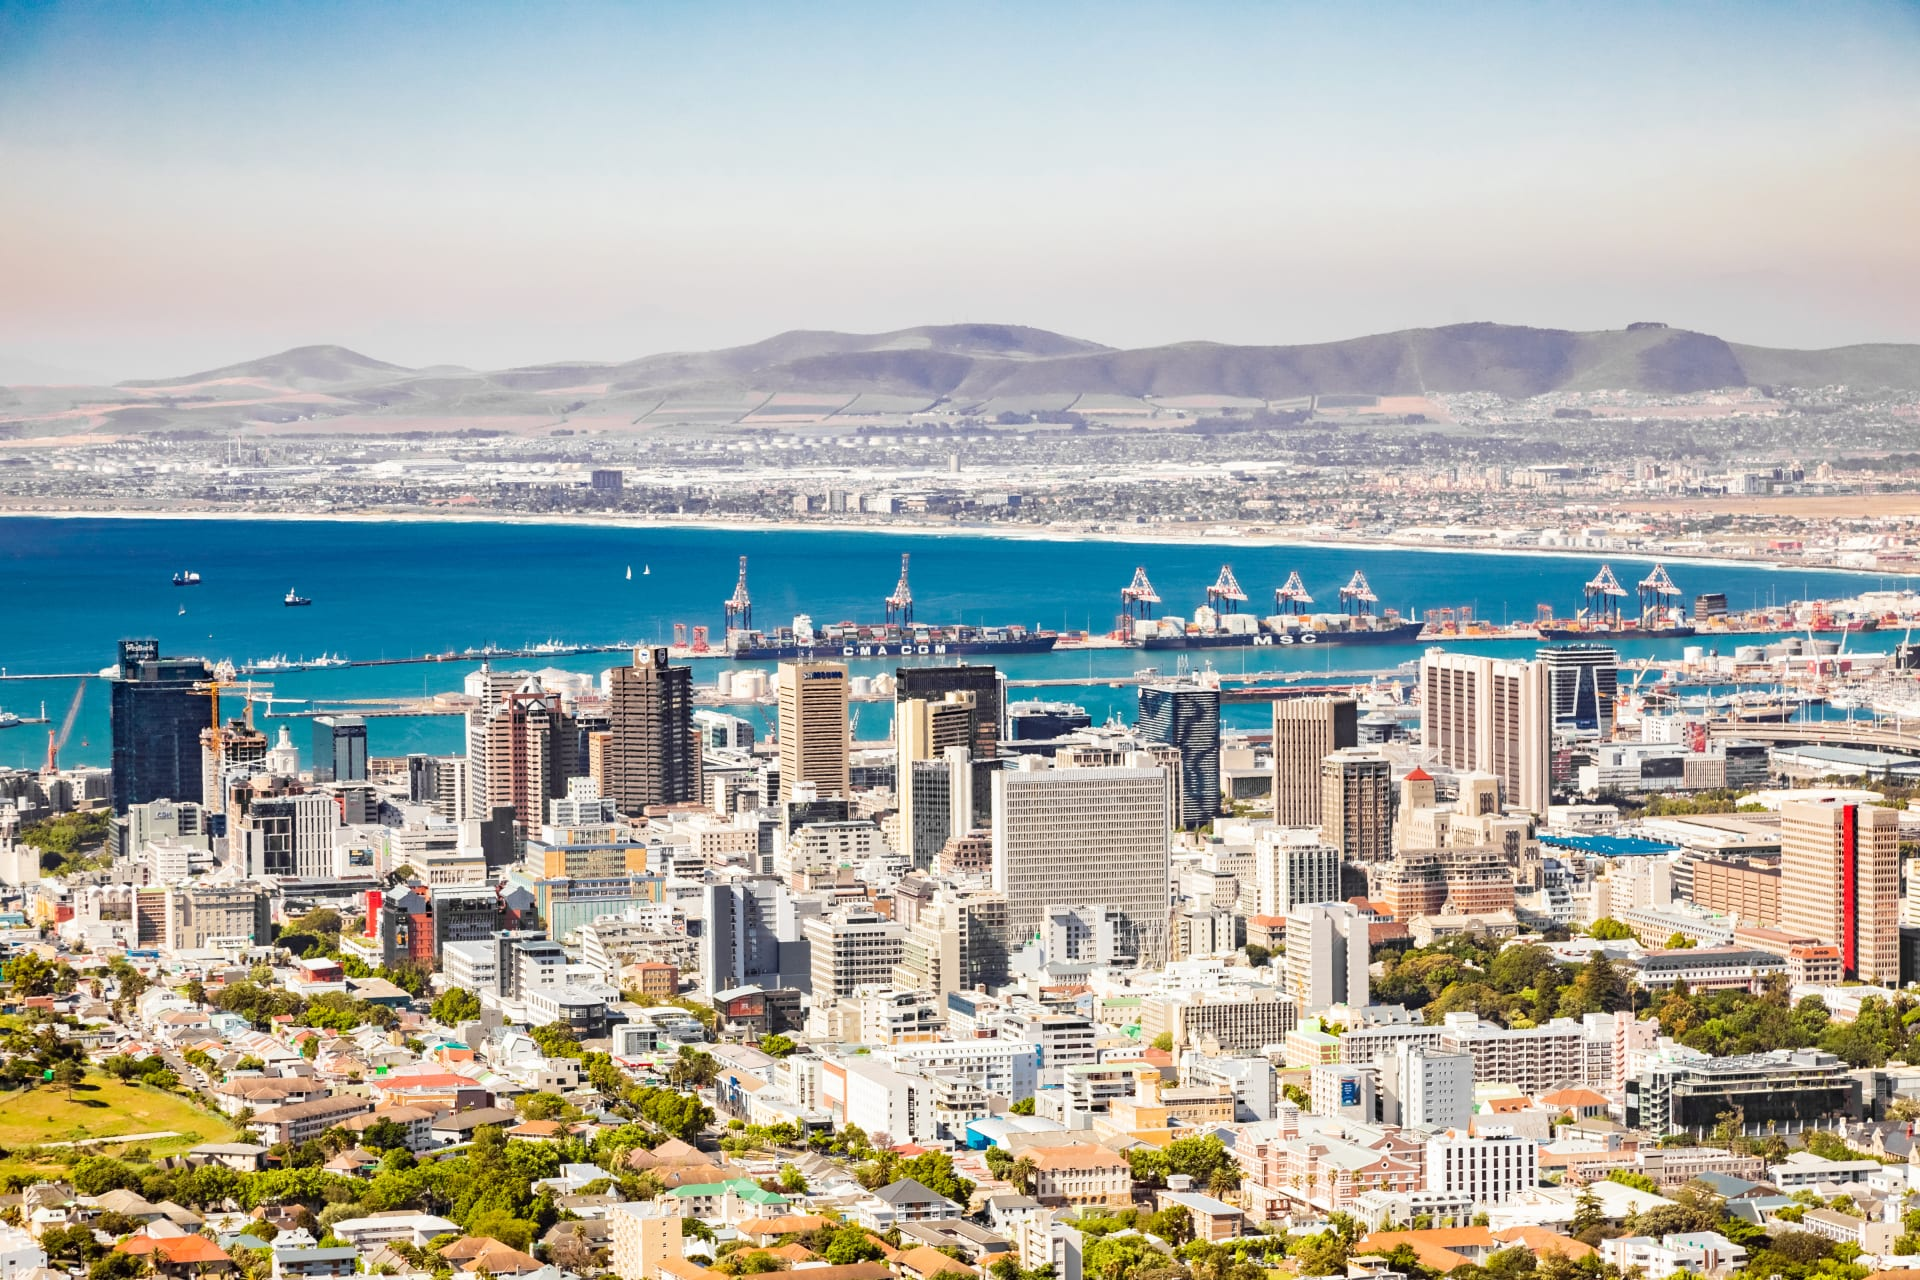 Cape Town - A Walk Around the Cape Town's City Bowl